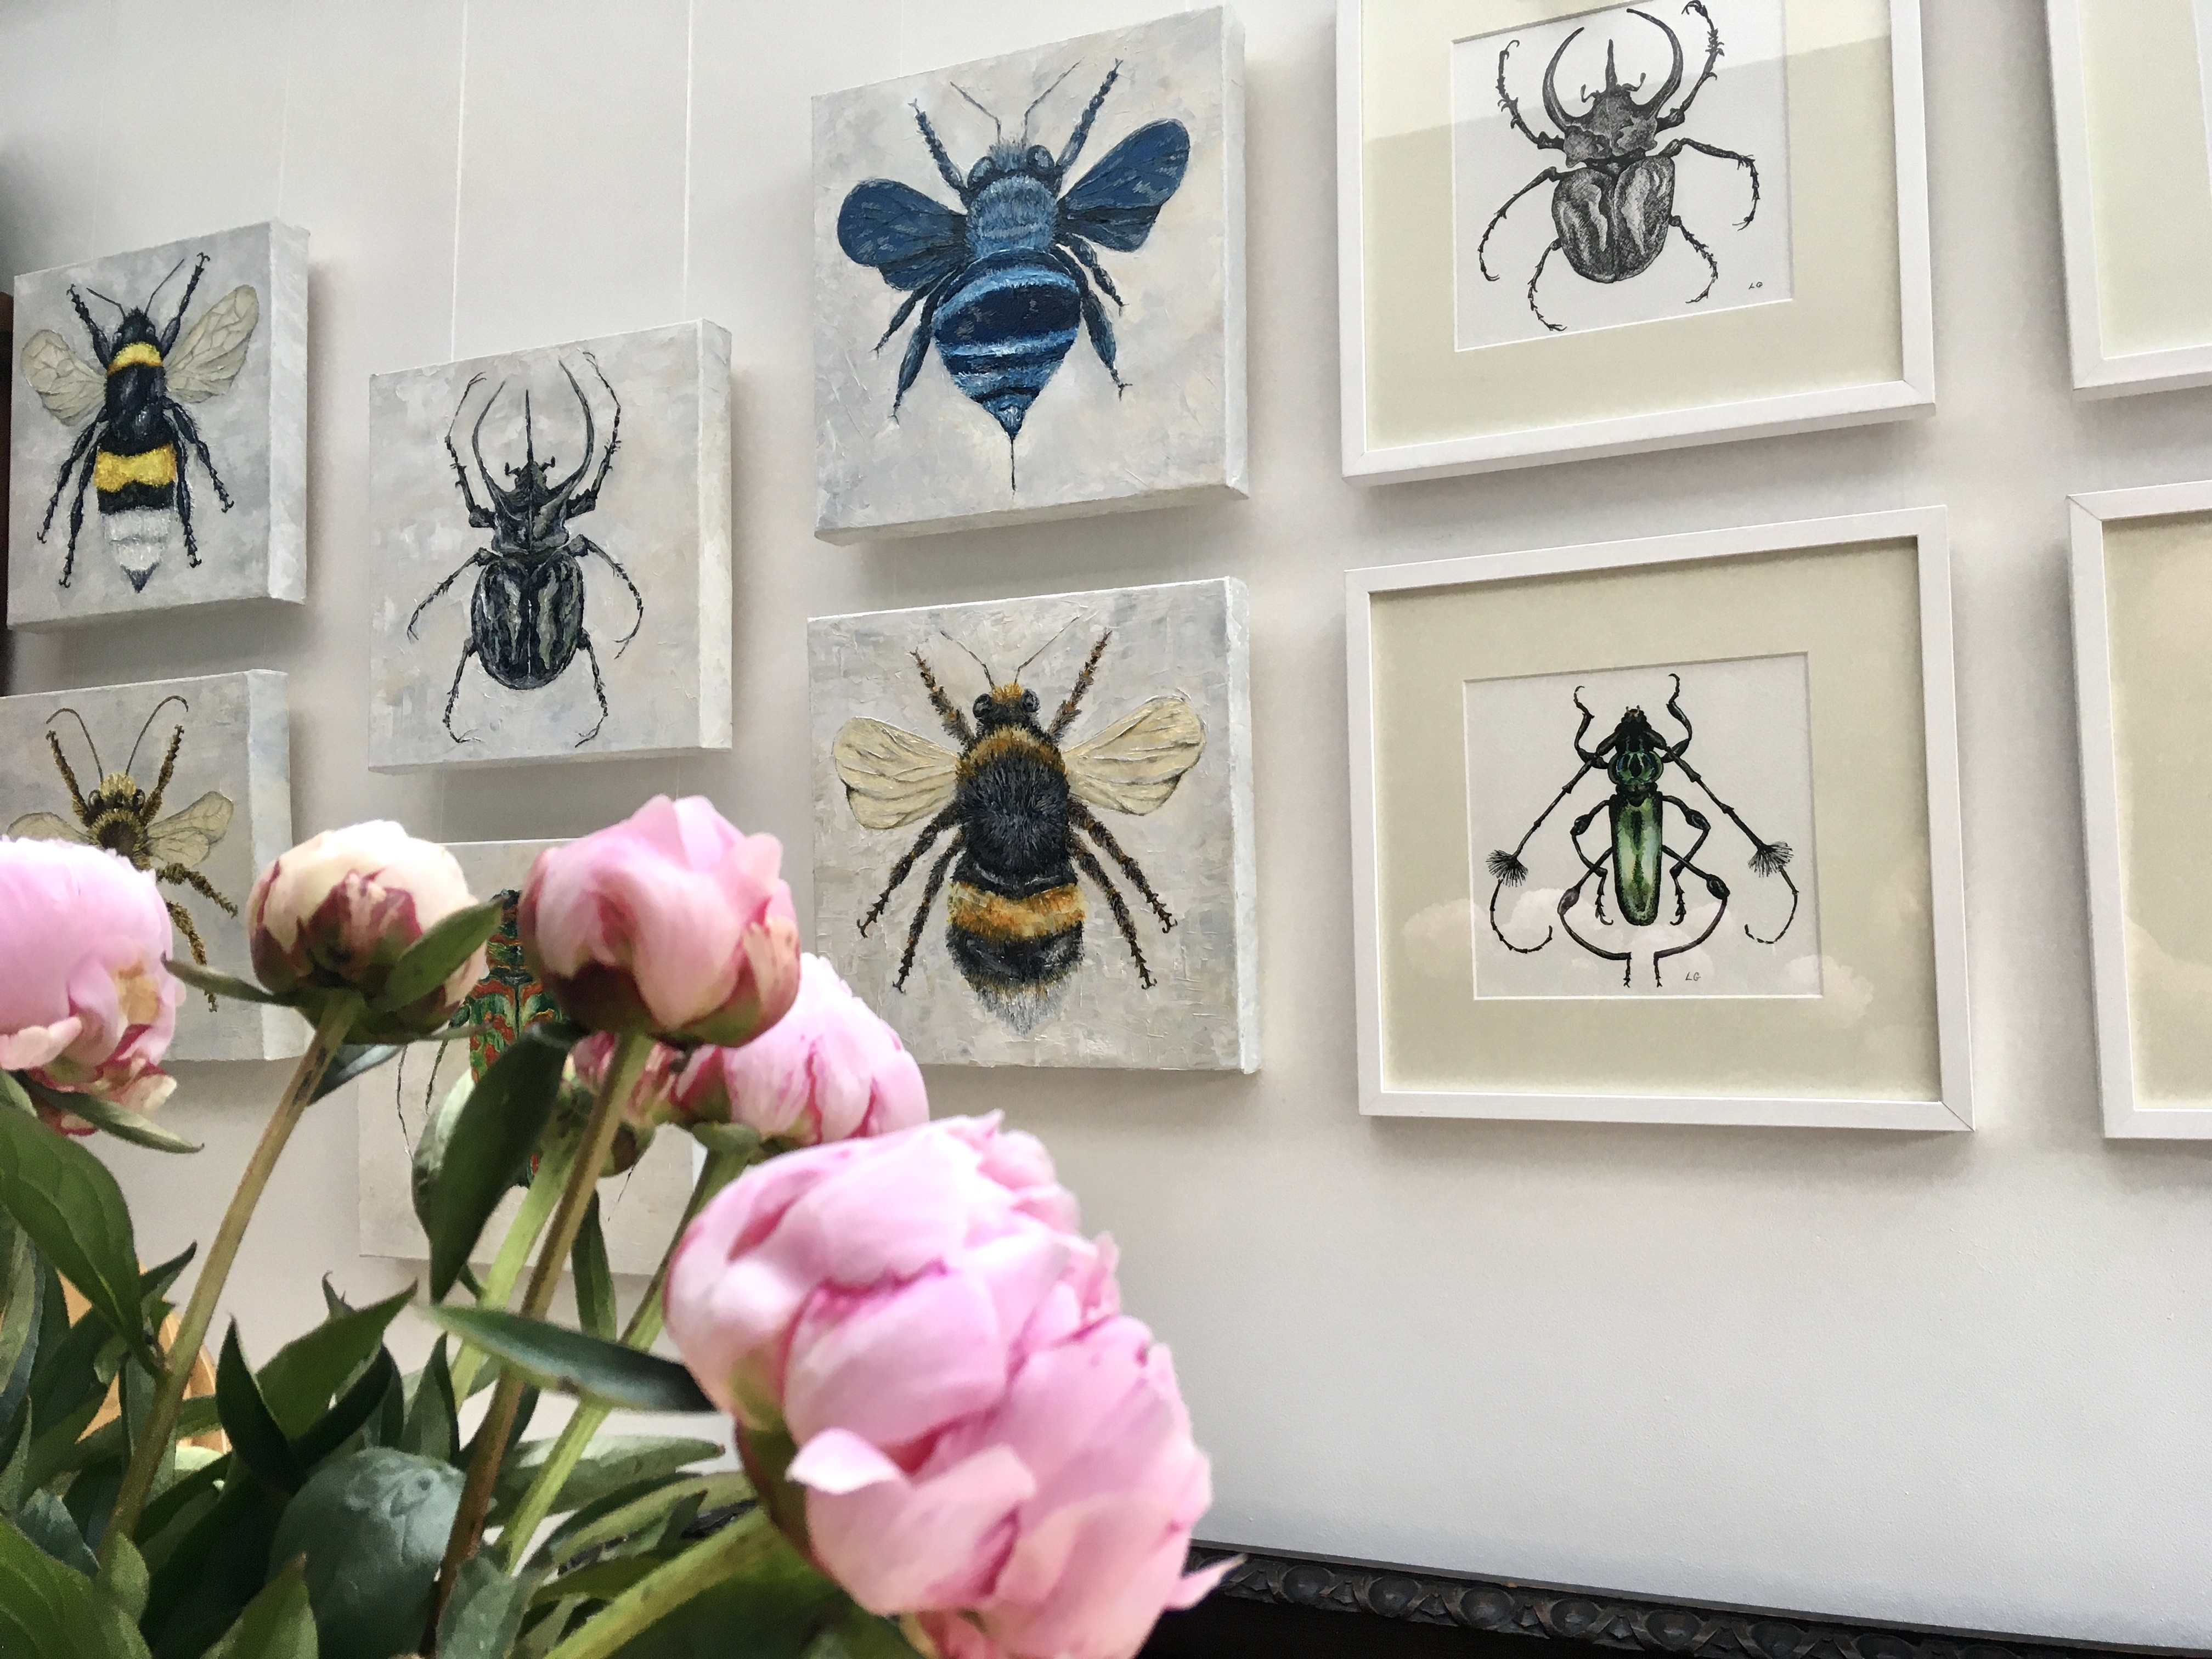 Exhibition of bee and beetle paintings